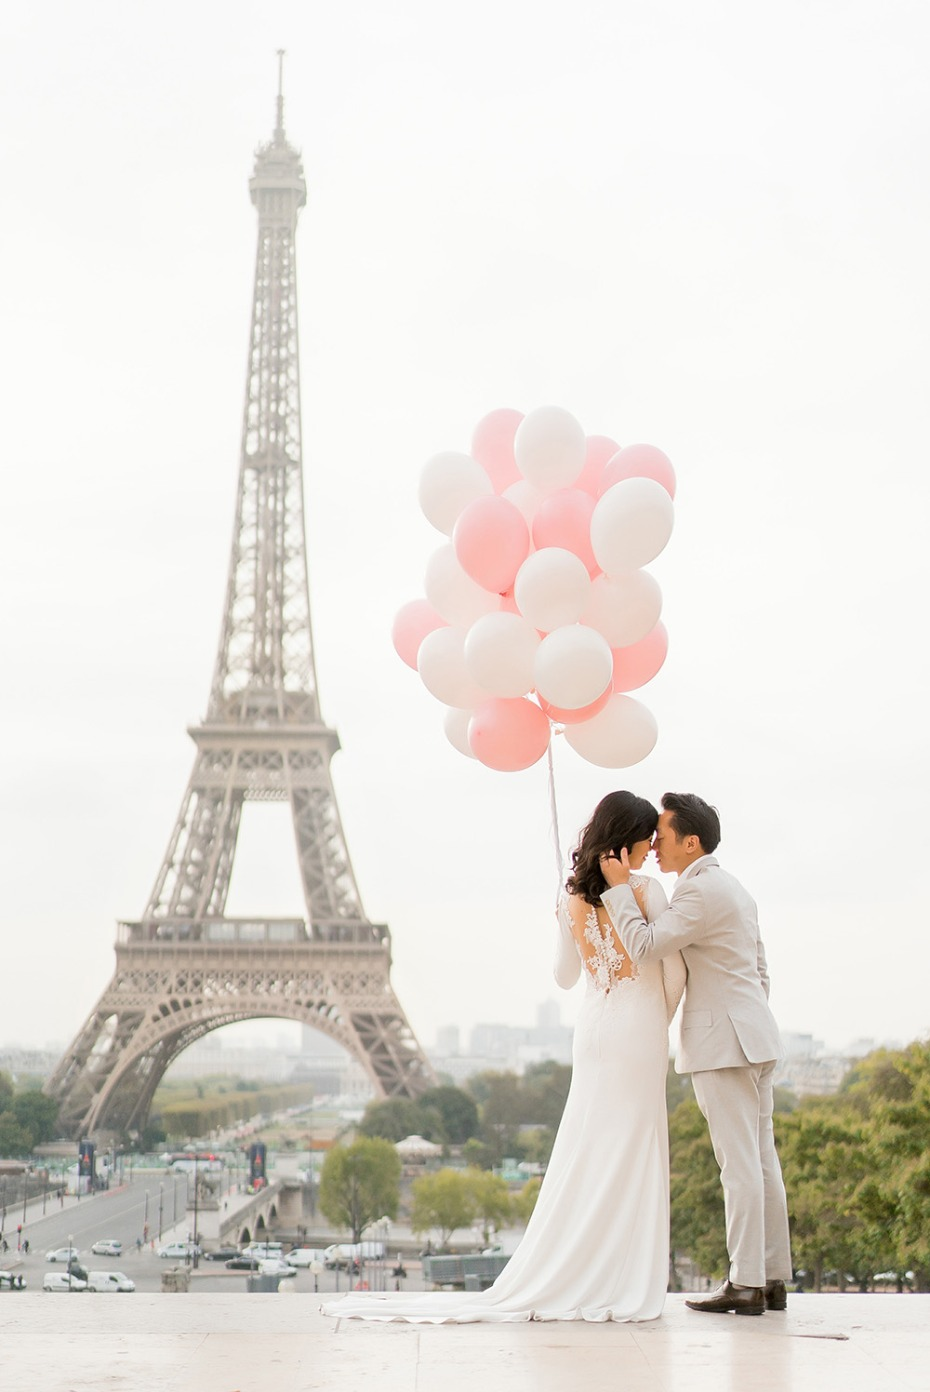 Paris Eiffel Tower Wedding Portrait